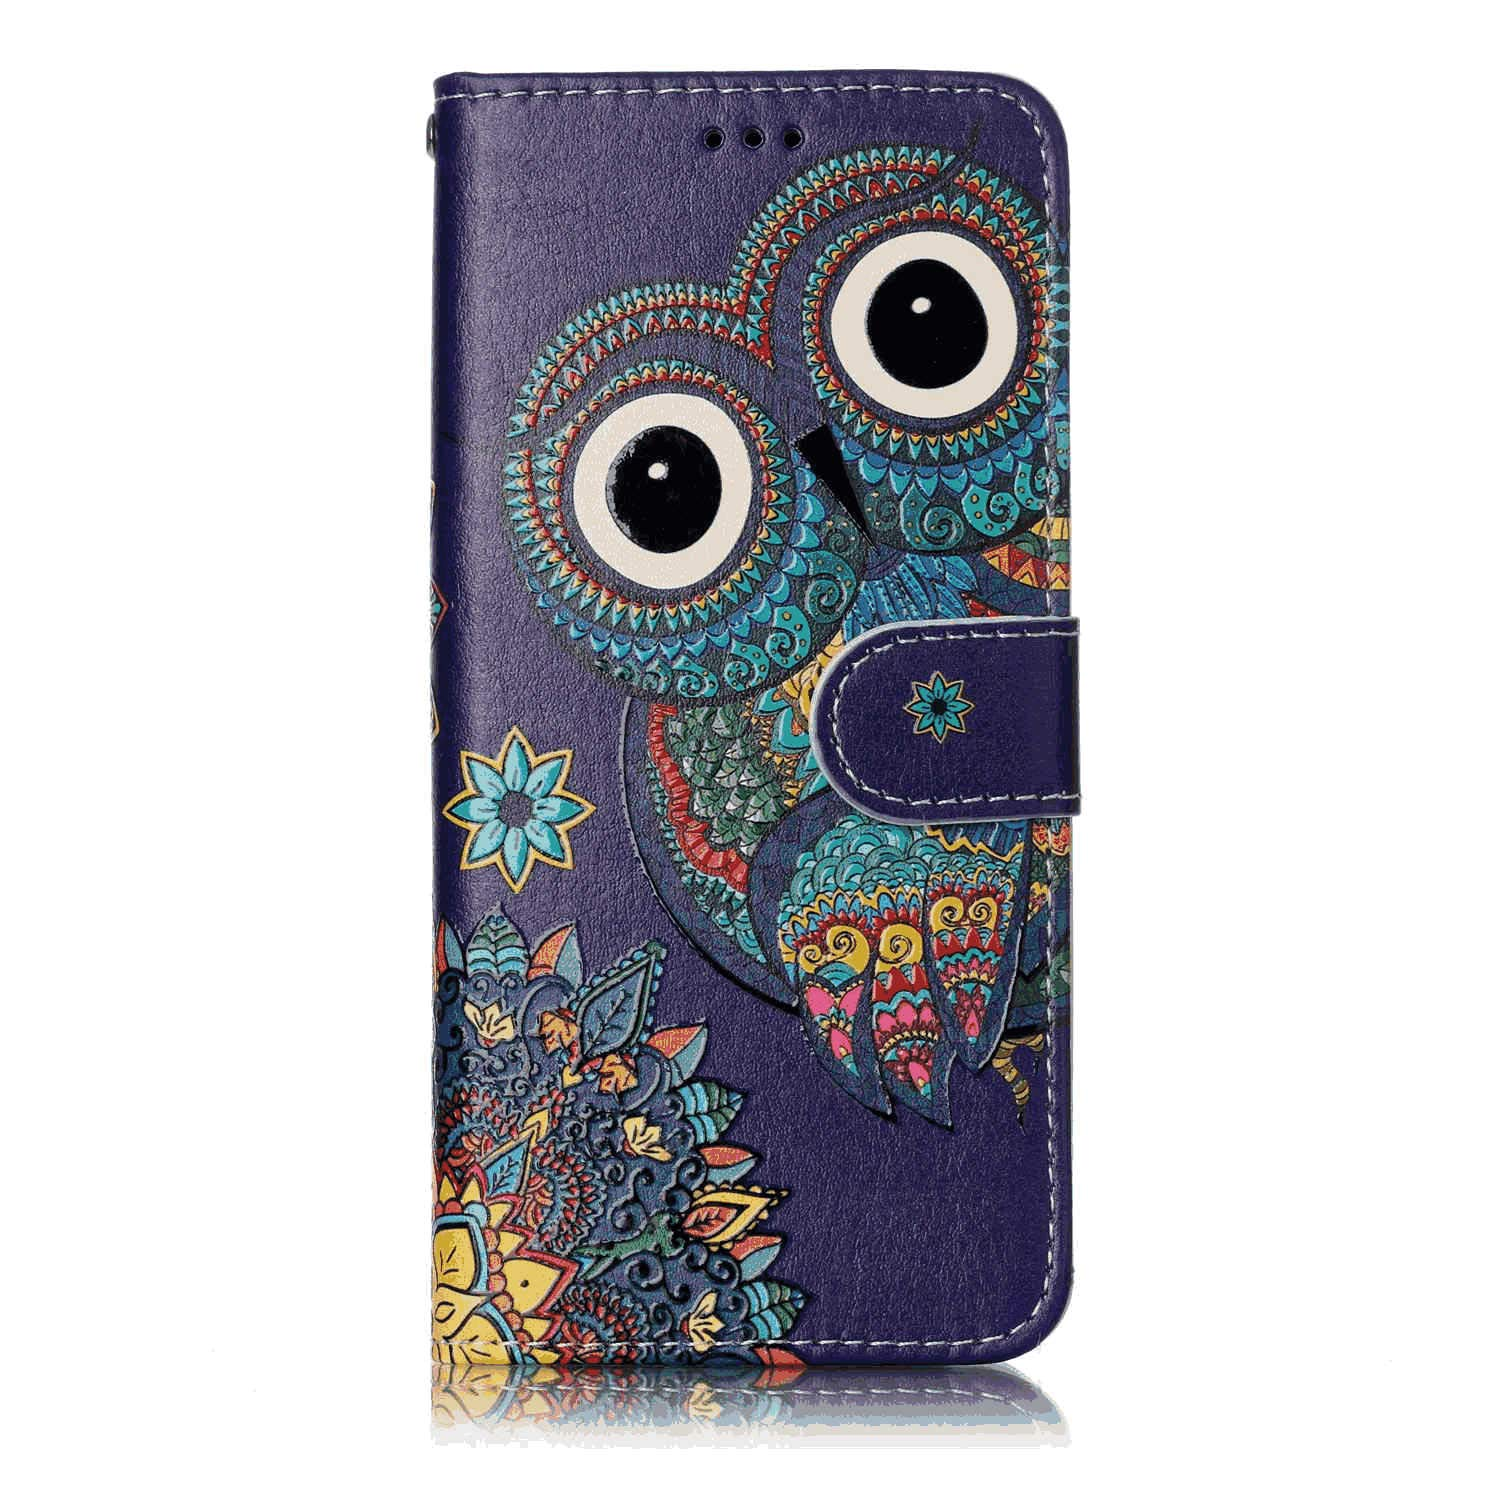 PU Leather Flip Cover Compatible with iPhone 11, Elegant Frog Wallet Case for iPhone 11